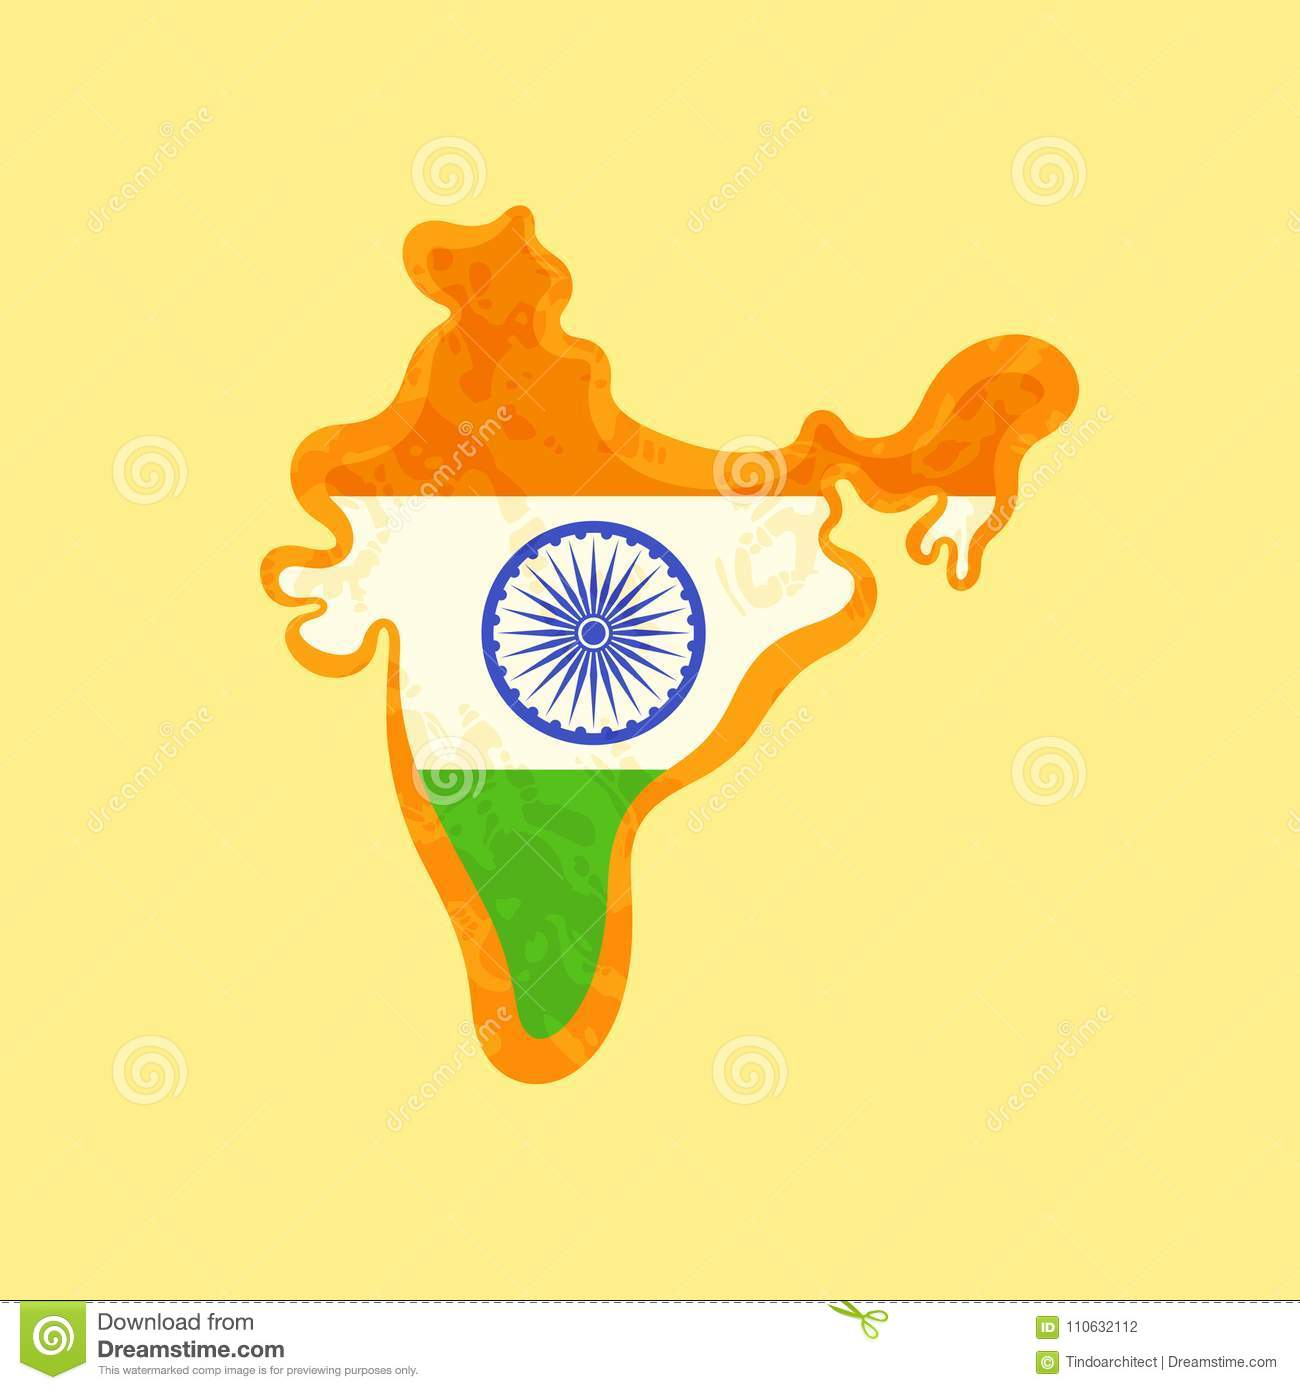 India - Map Colored With Indian Flag Stock Vector ... on highlighted map of india, abstract map of india, national geographic map of india, world map india, chinese map of india, plain map of india, colors of india, black and white map of india, transparent map of india, colored world map, large map of india, water map of india, labeled map of india, asian map of india, enlarged map of india, small map of india, full map of india, hindu kush map of india, elevation map of india, old map of india,